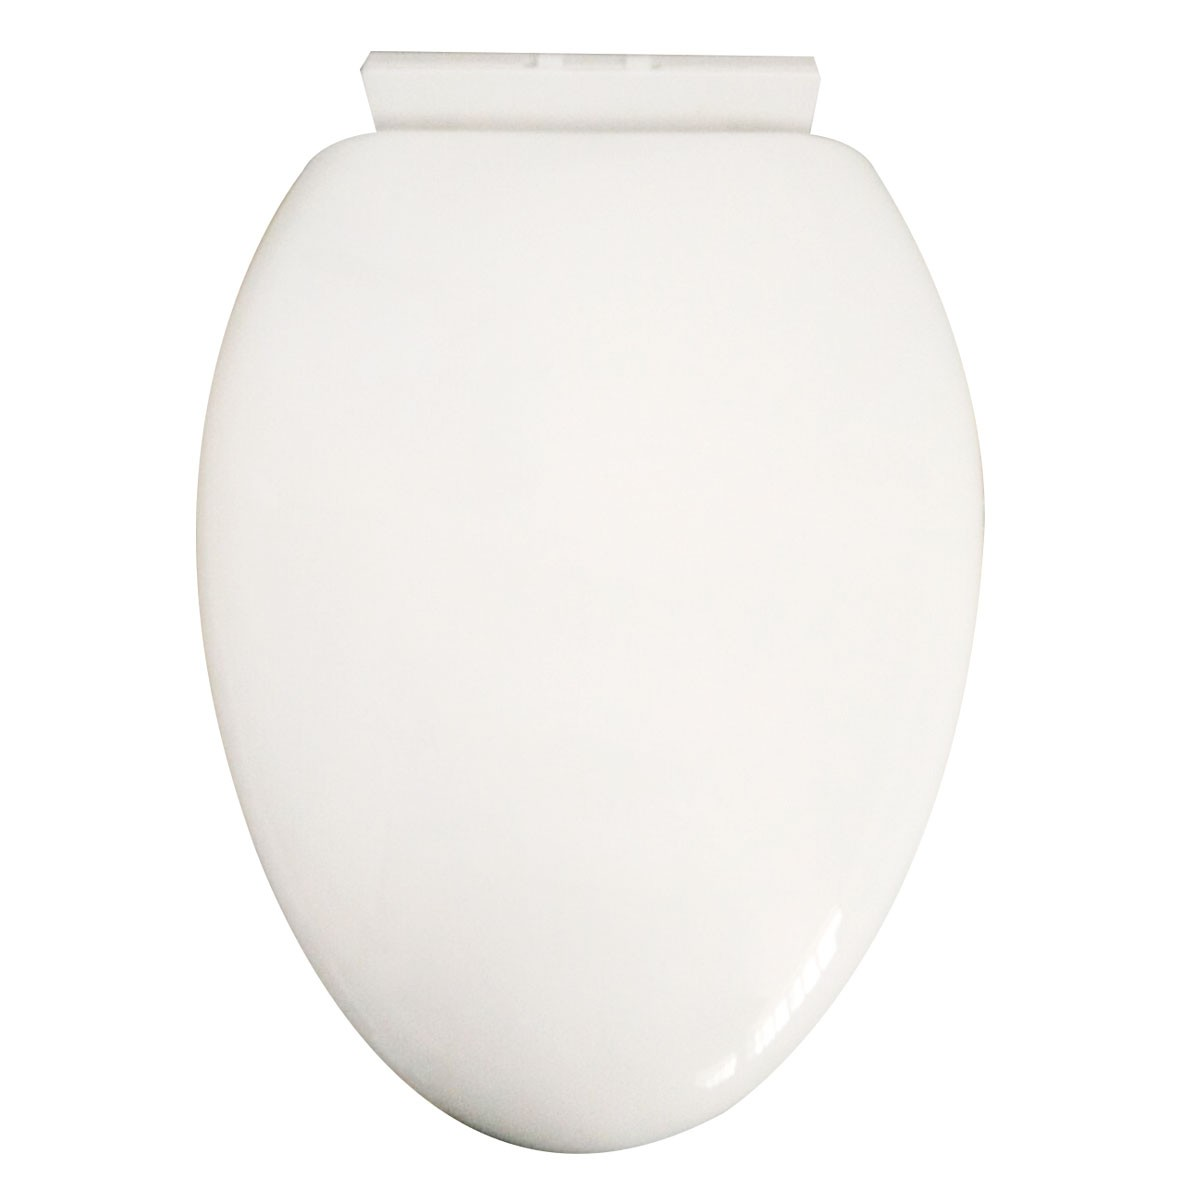 White Soft Close Toilet Seat with Cover (DK-CL-060)